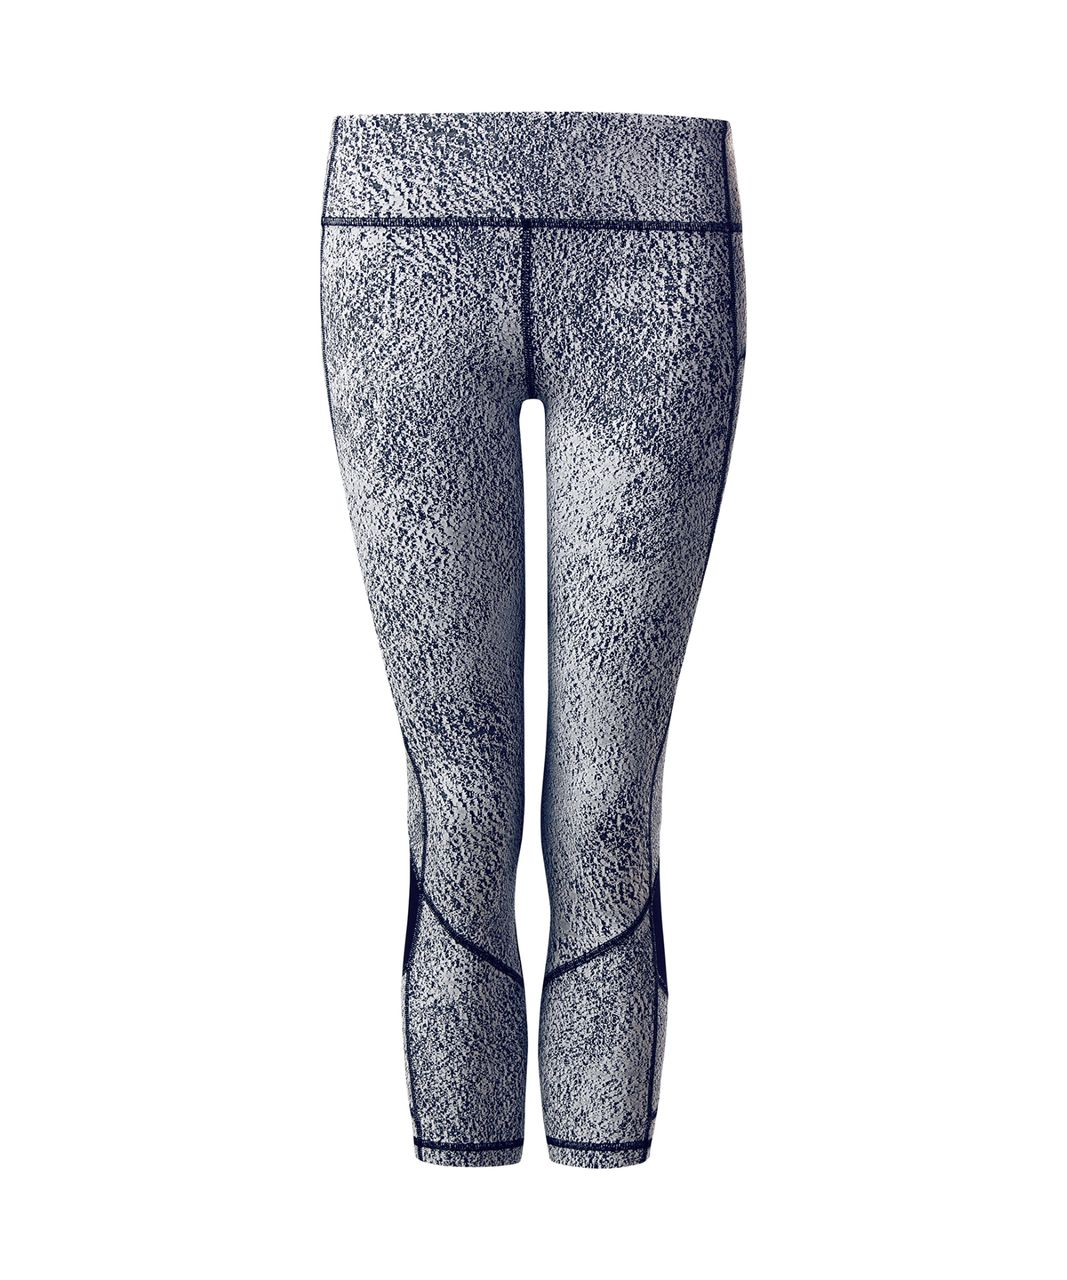 Lululemon Pace Rival Crop - Power Luxtreme Spray Jacquard White Black / Black